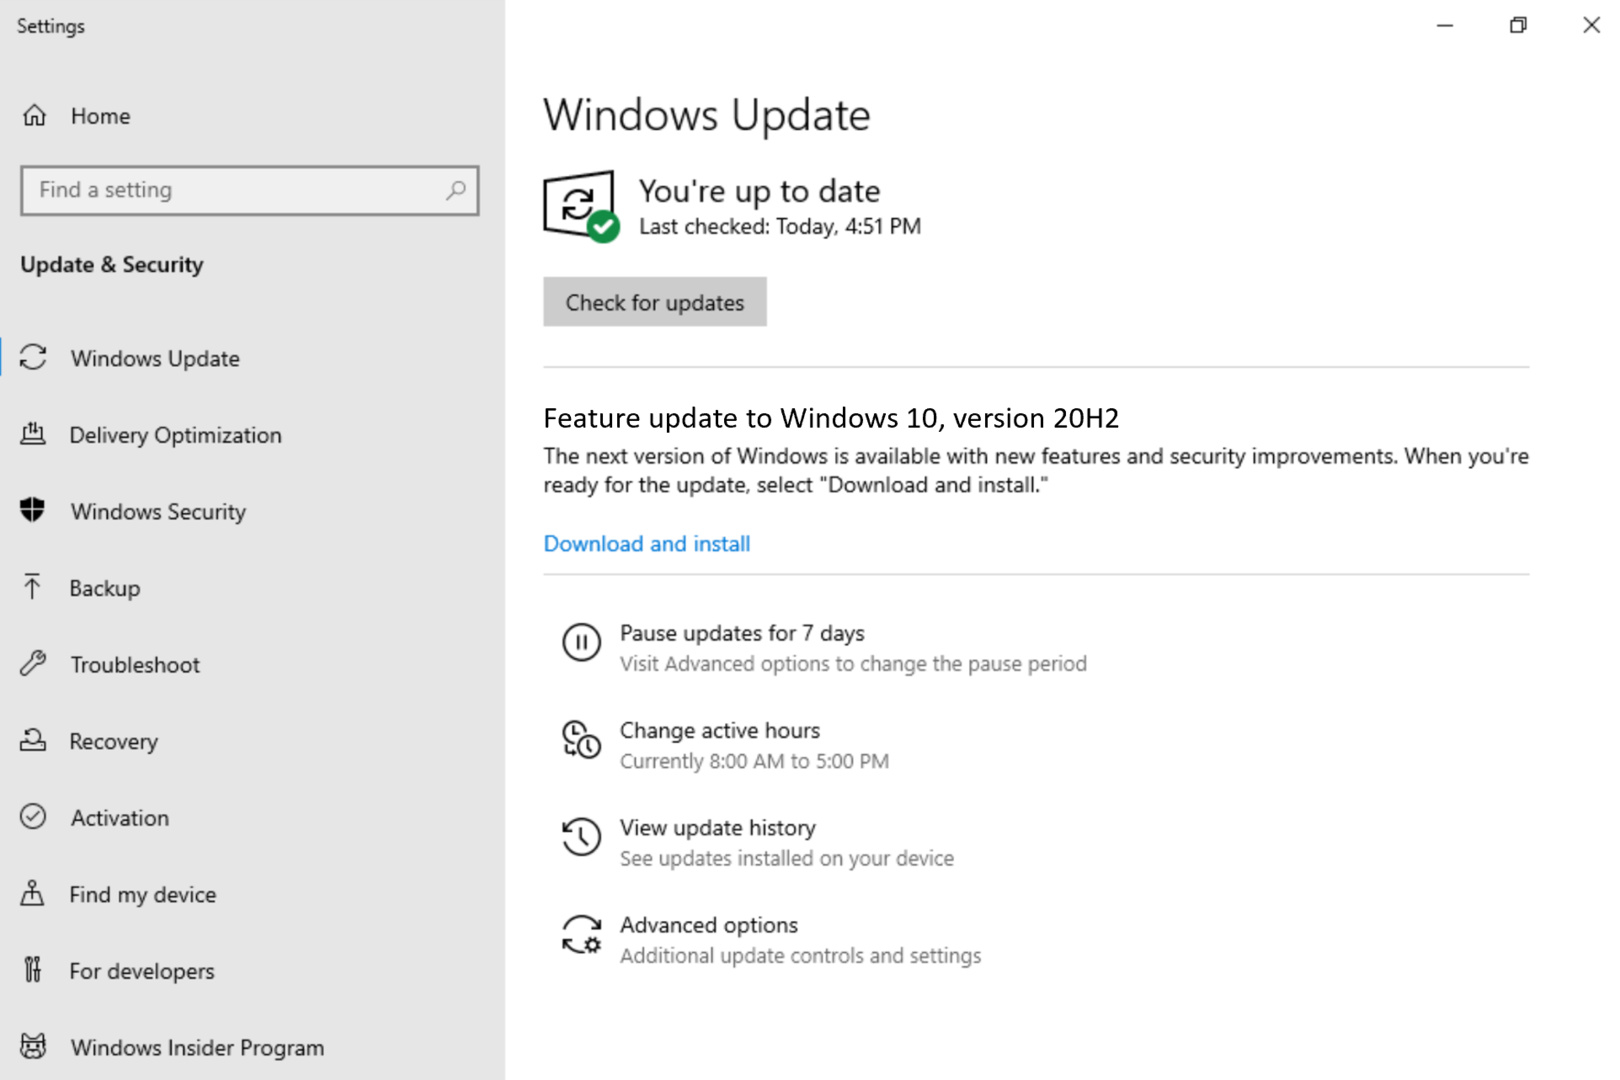 Windows 10 Insider Preview Build 19042.330 wird bereits im Beta Channel verteilt